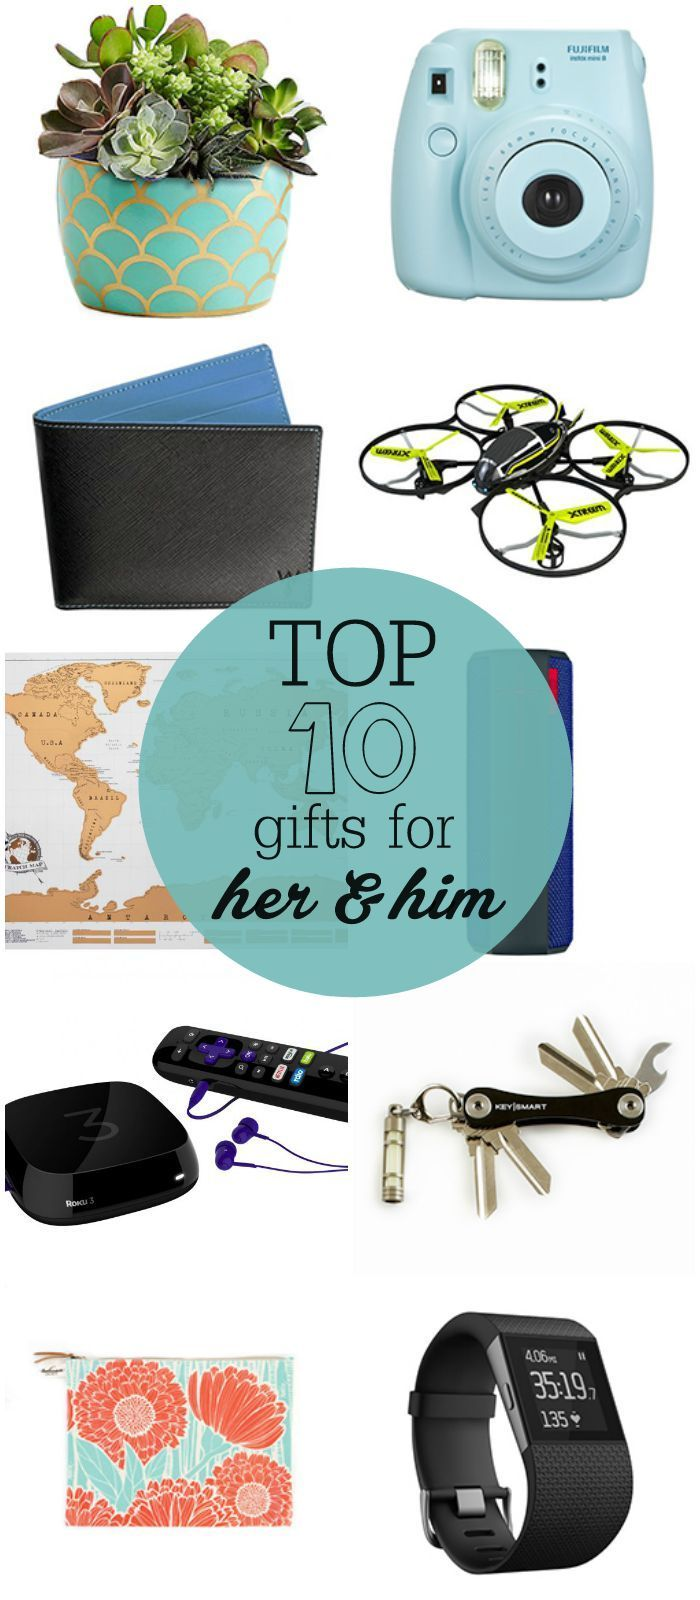 Top 10 Gifts for Her and Him   Best of Pinterest   Pinterest   Gifts ...